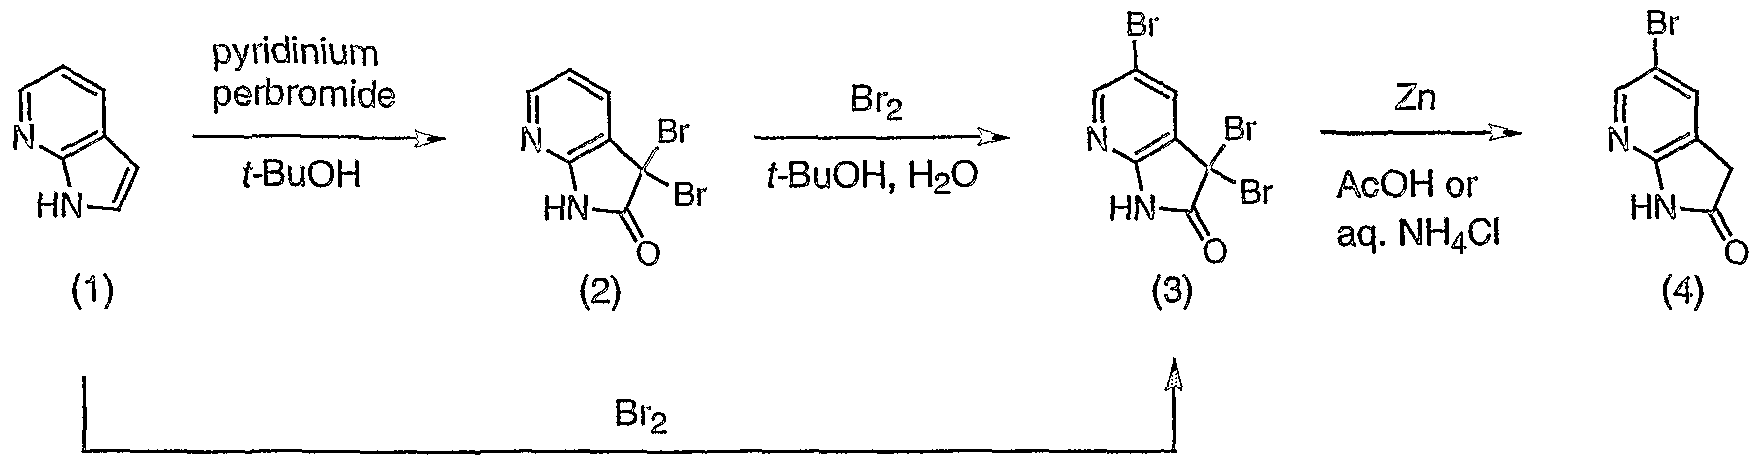 WO2004078757A2 - Synthesis of 5-substituted 7-azaindoles and